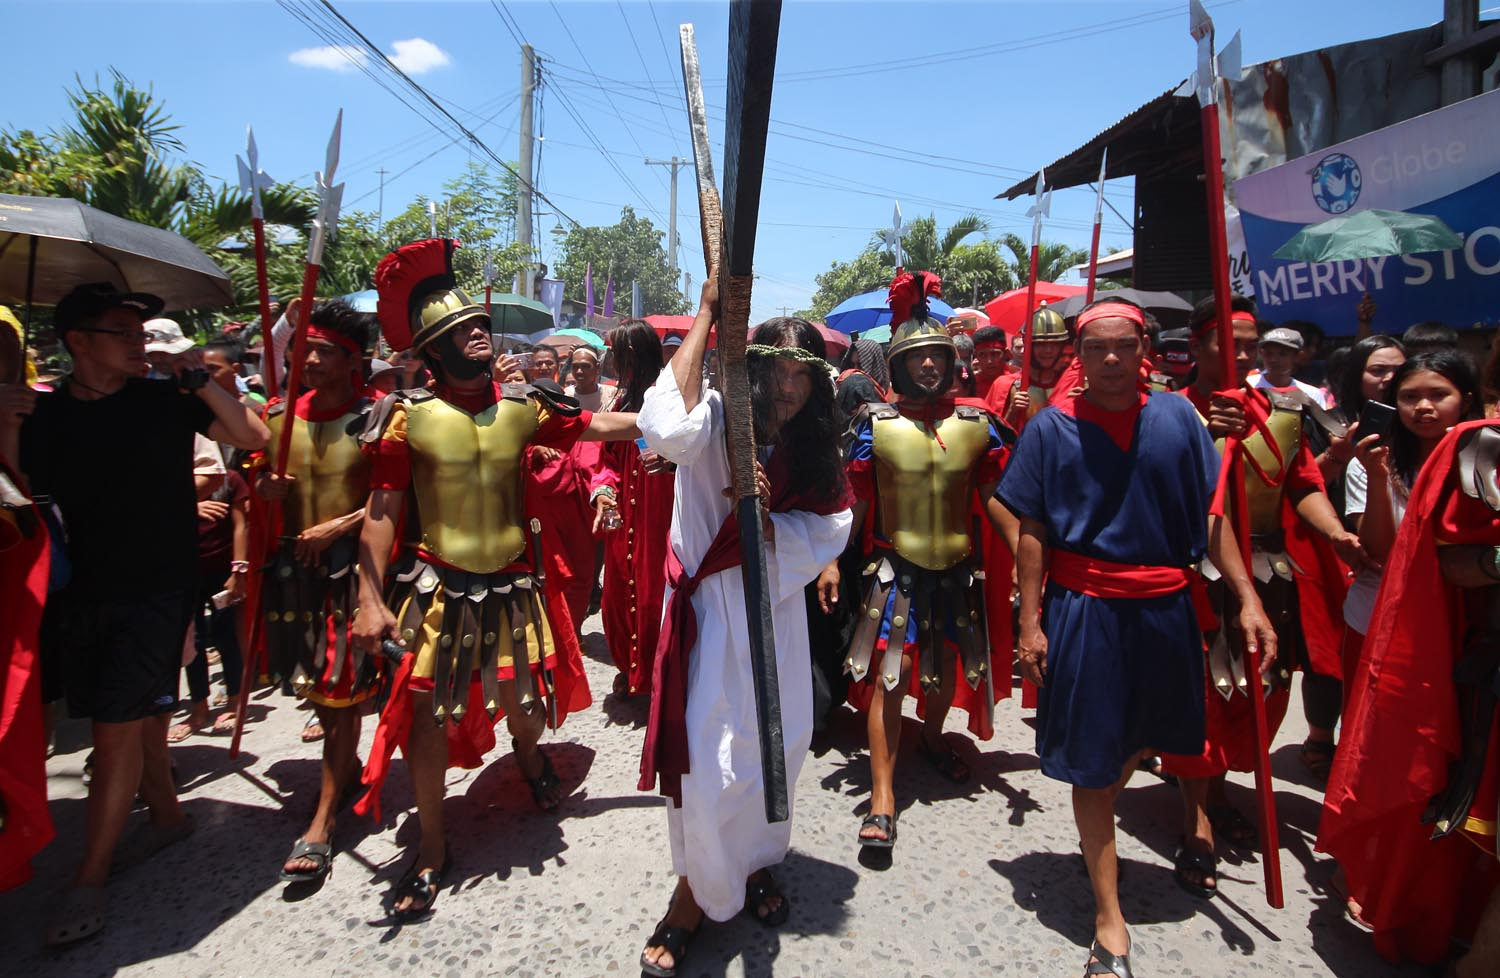 WAY OF THE CROSS. Ruben Enaje carries his cross to the crucifixion site. Photo by Darren Langit